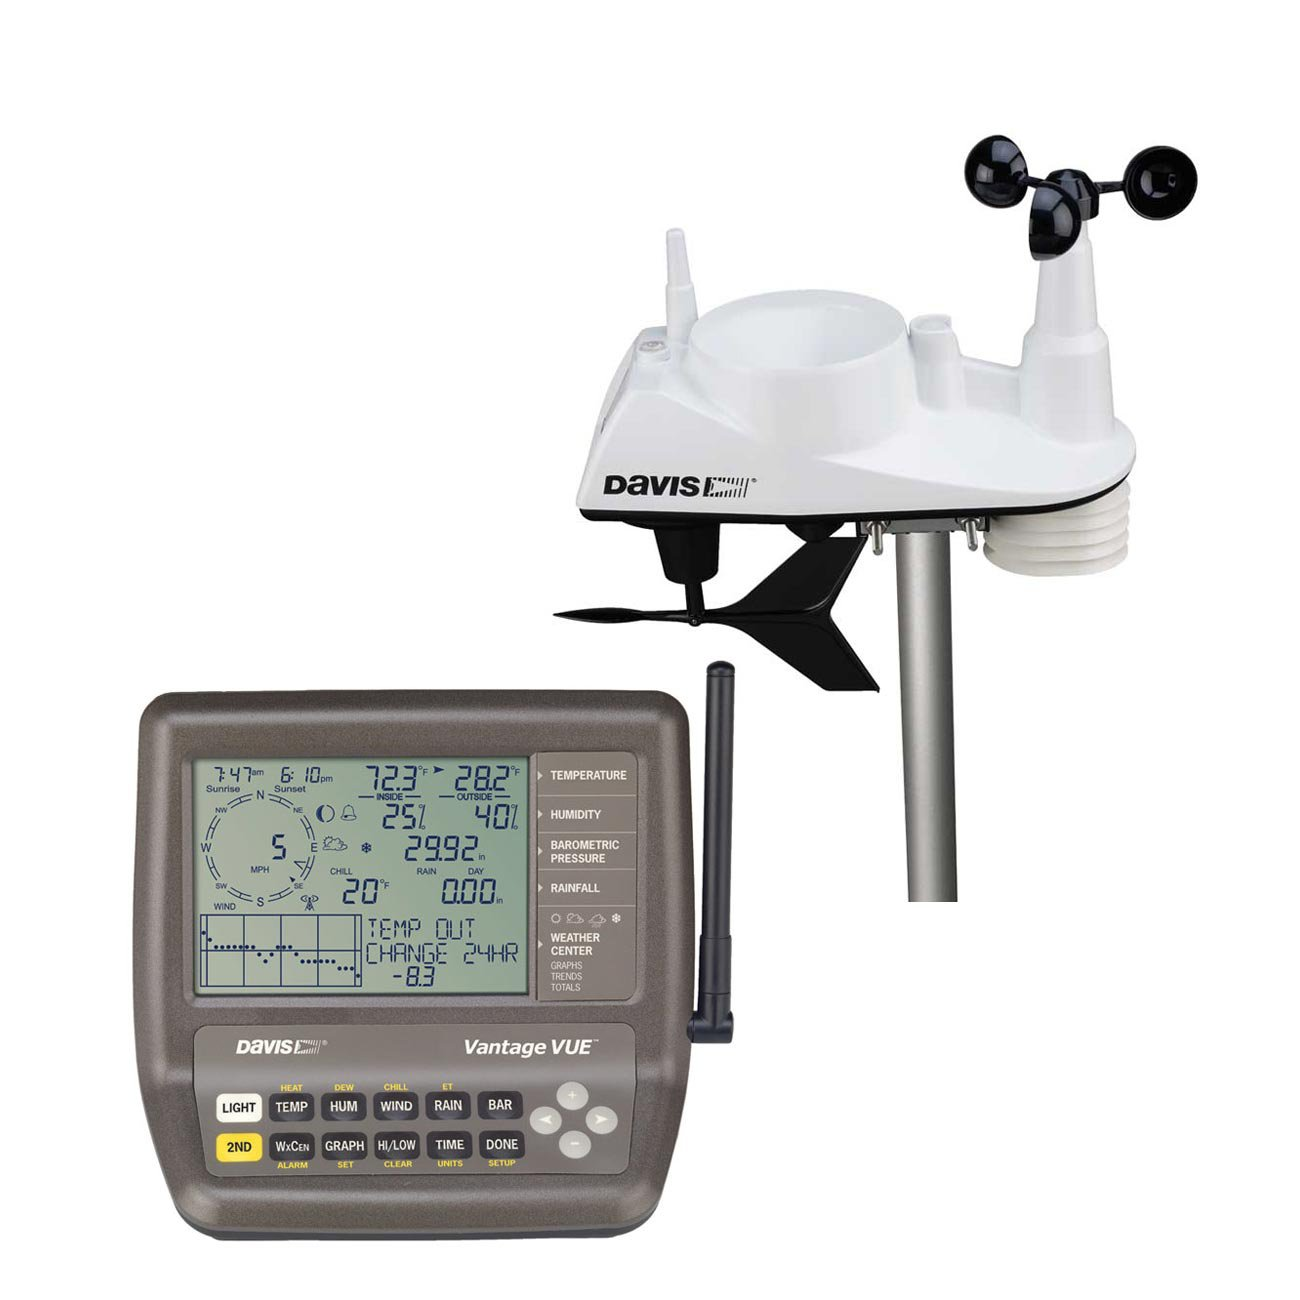 Davis 6250 VantageVue Wireless Weather Station by Davis